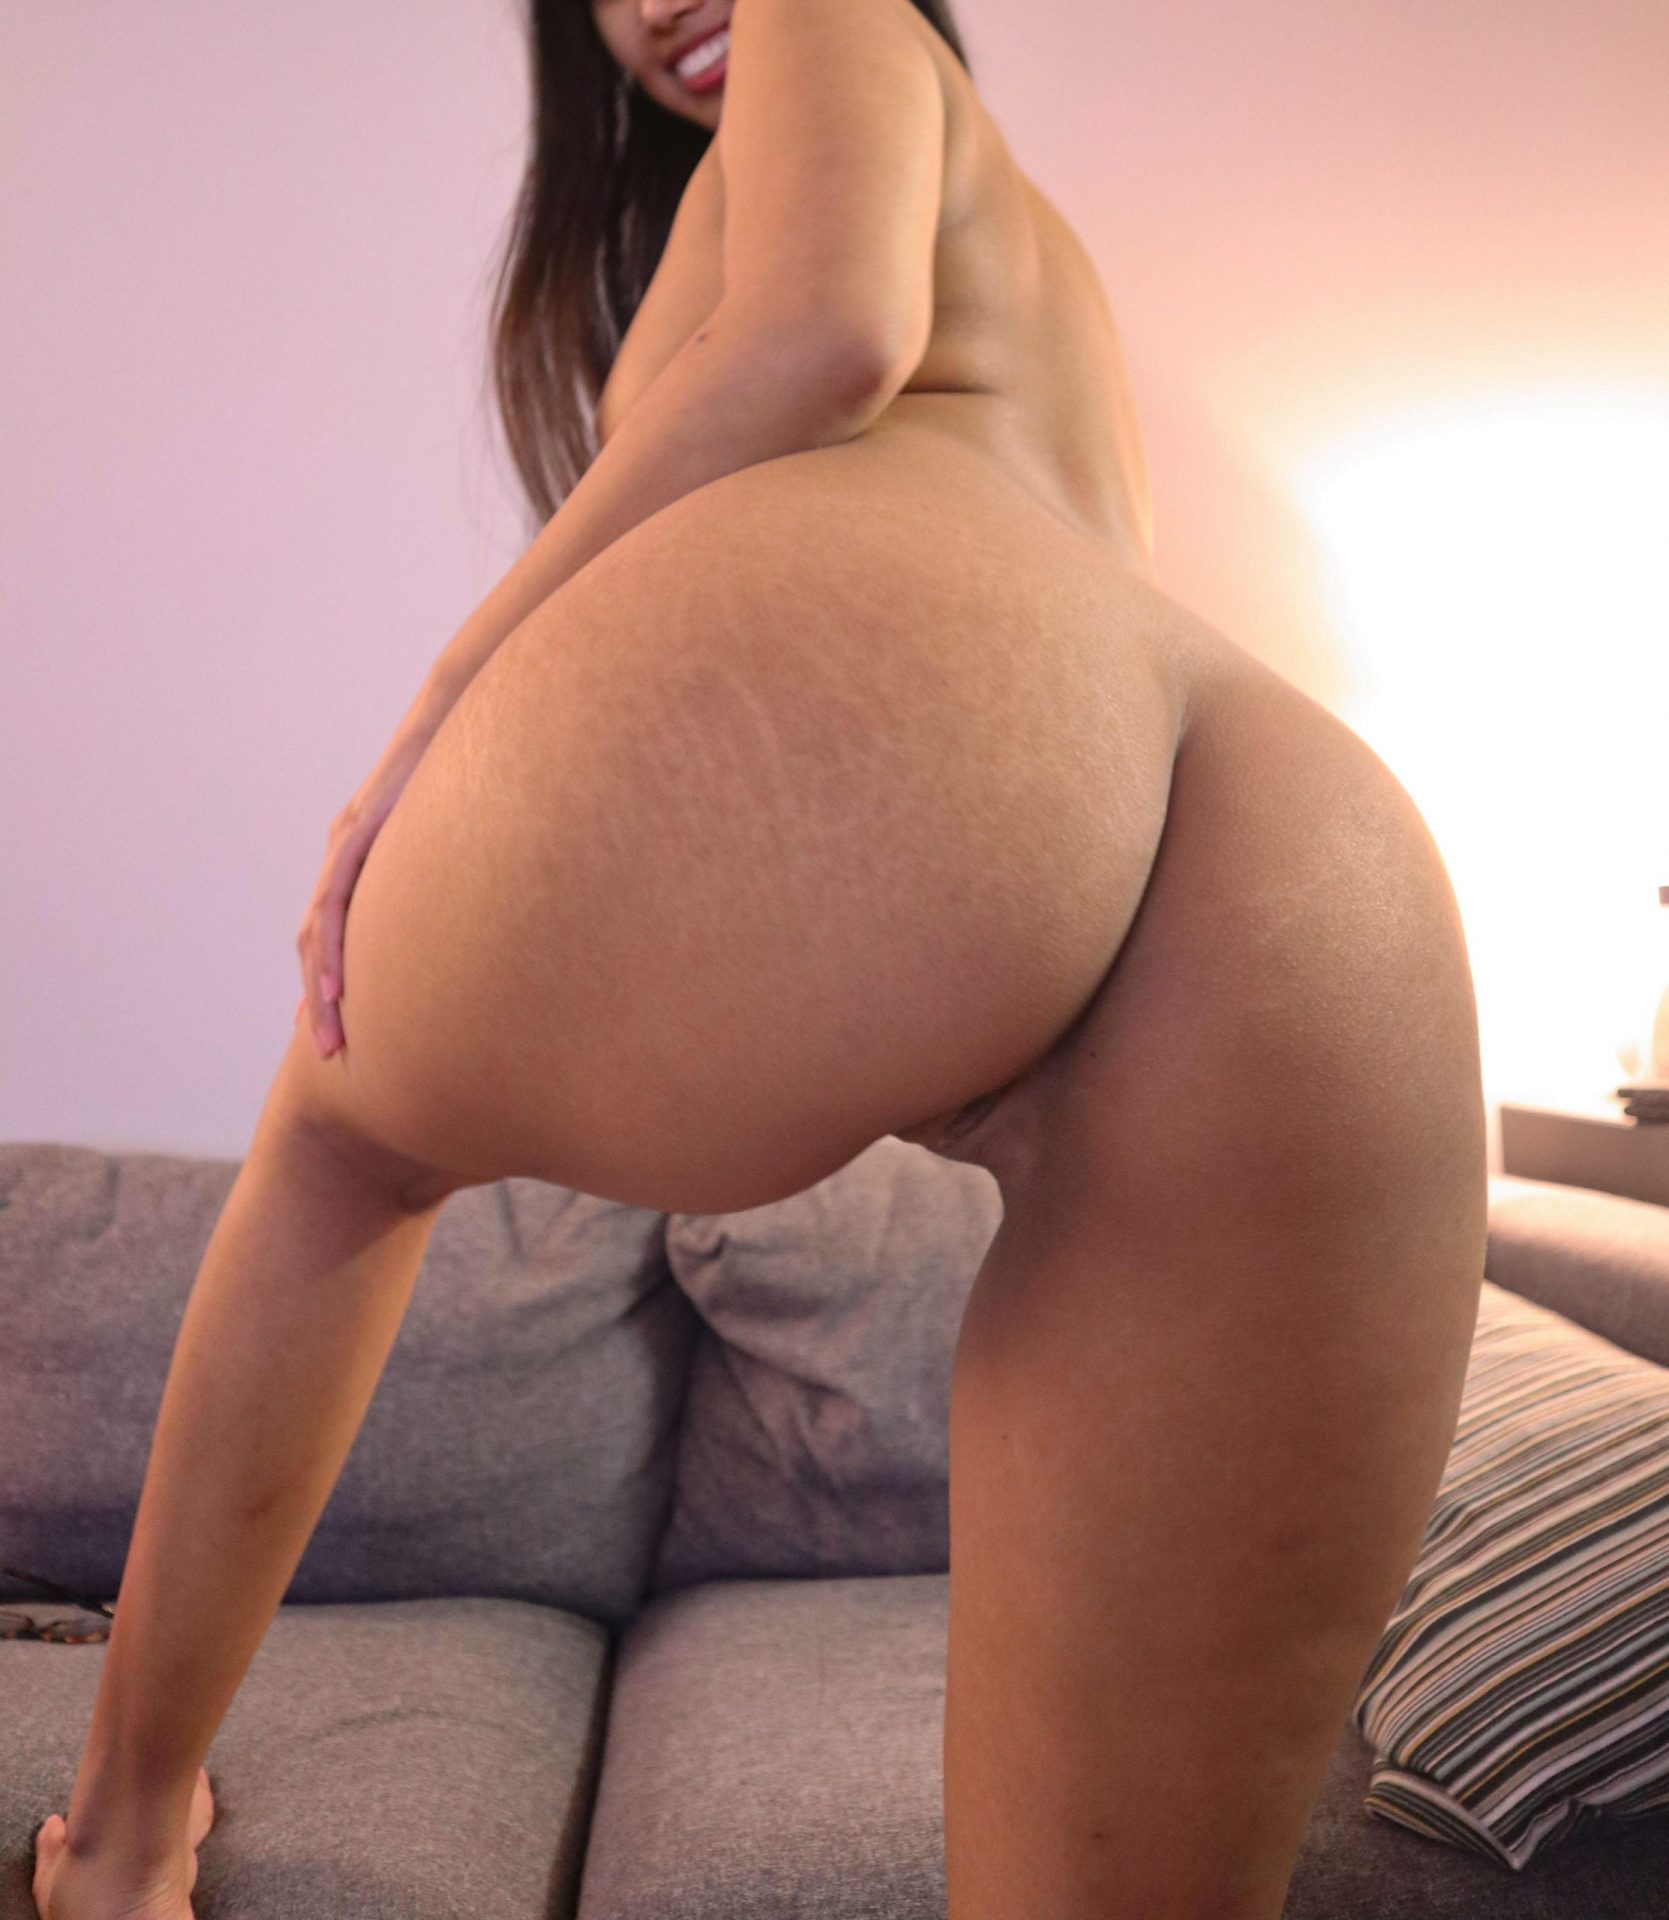 Can I bounce my fat filipina ass on you?